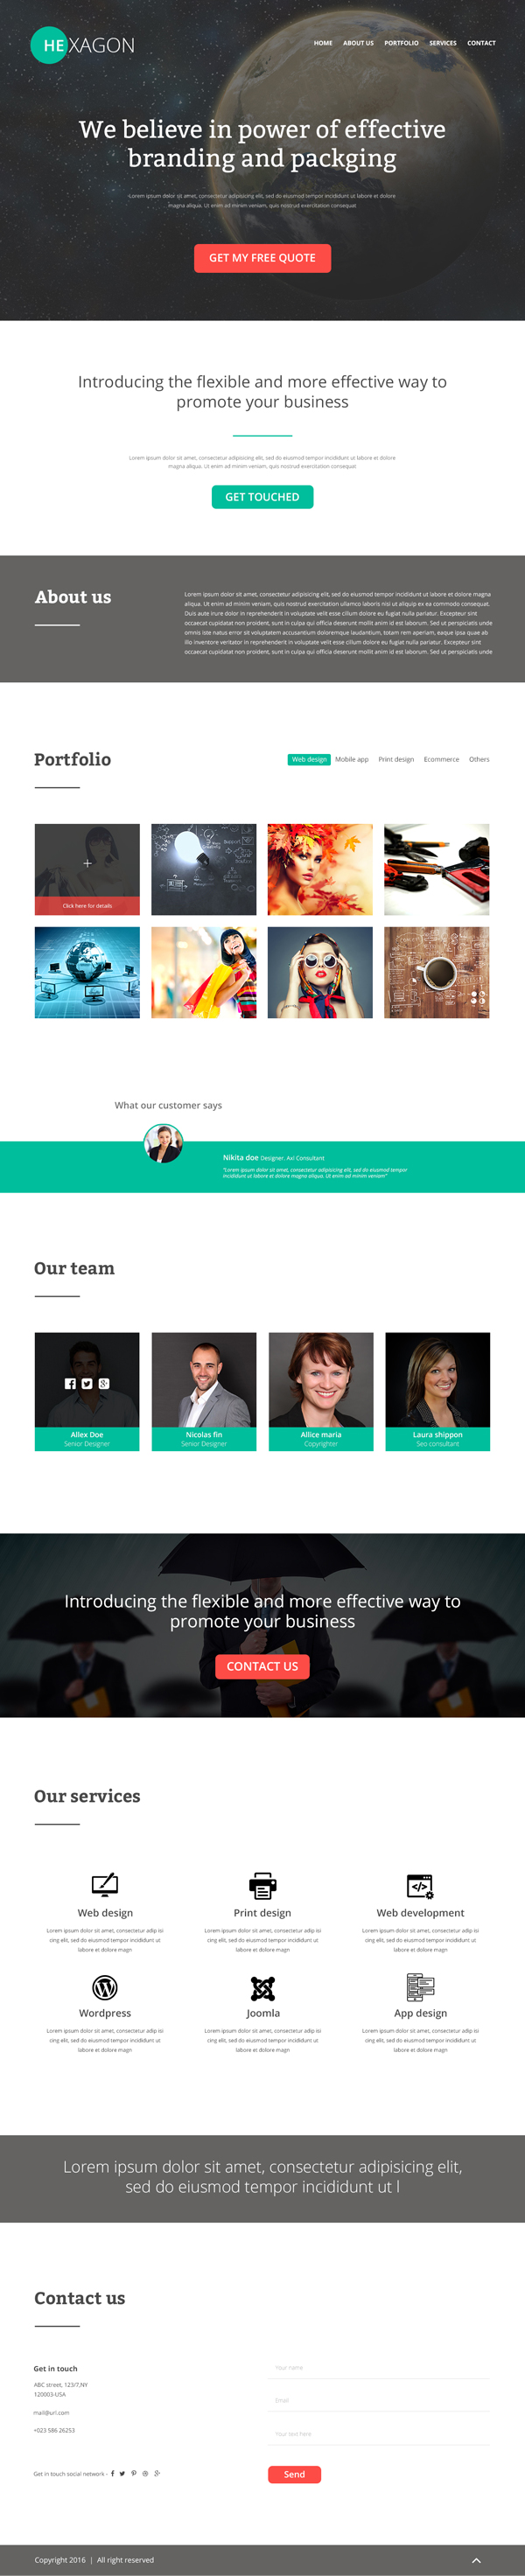 Free Hexagon Portfolio PSD Website Template